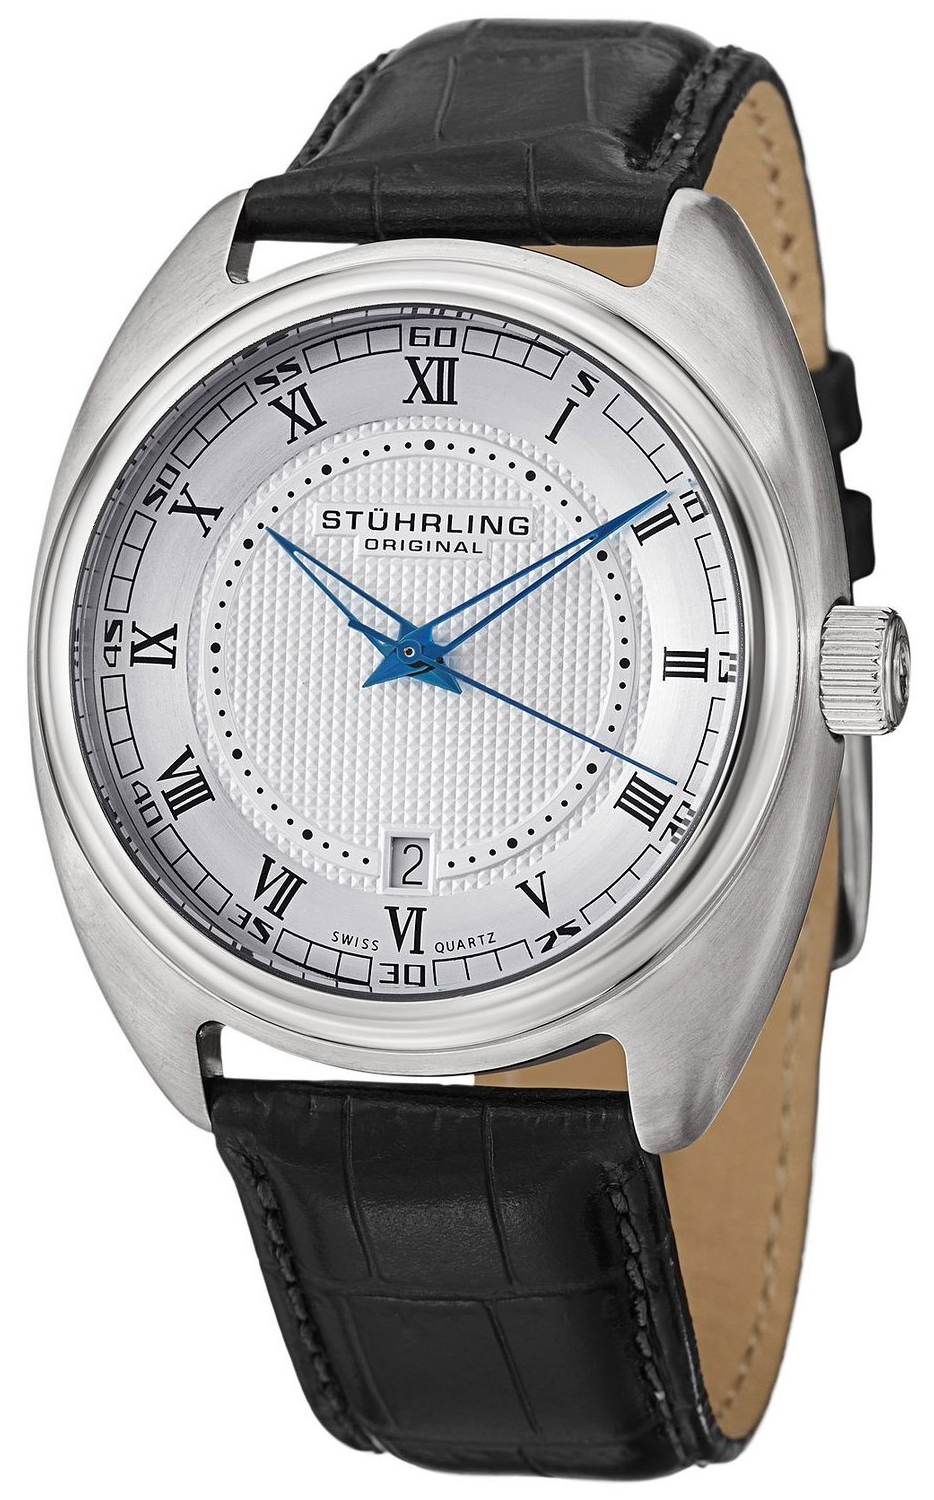 Stührling Original Herreklokke 728.01 Sølvfarget/Lær Ø42 mm - Stührling Original